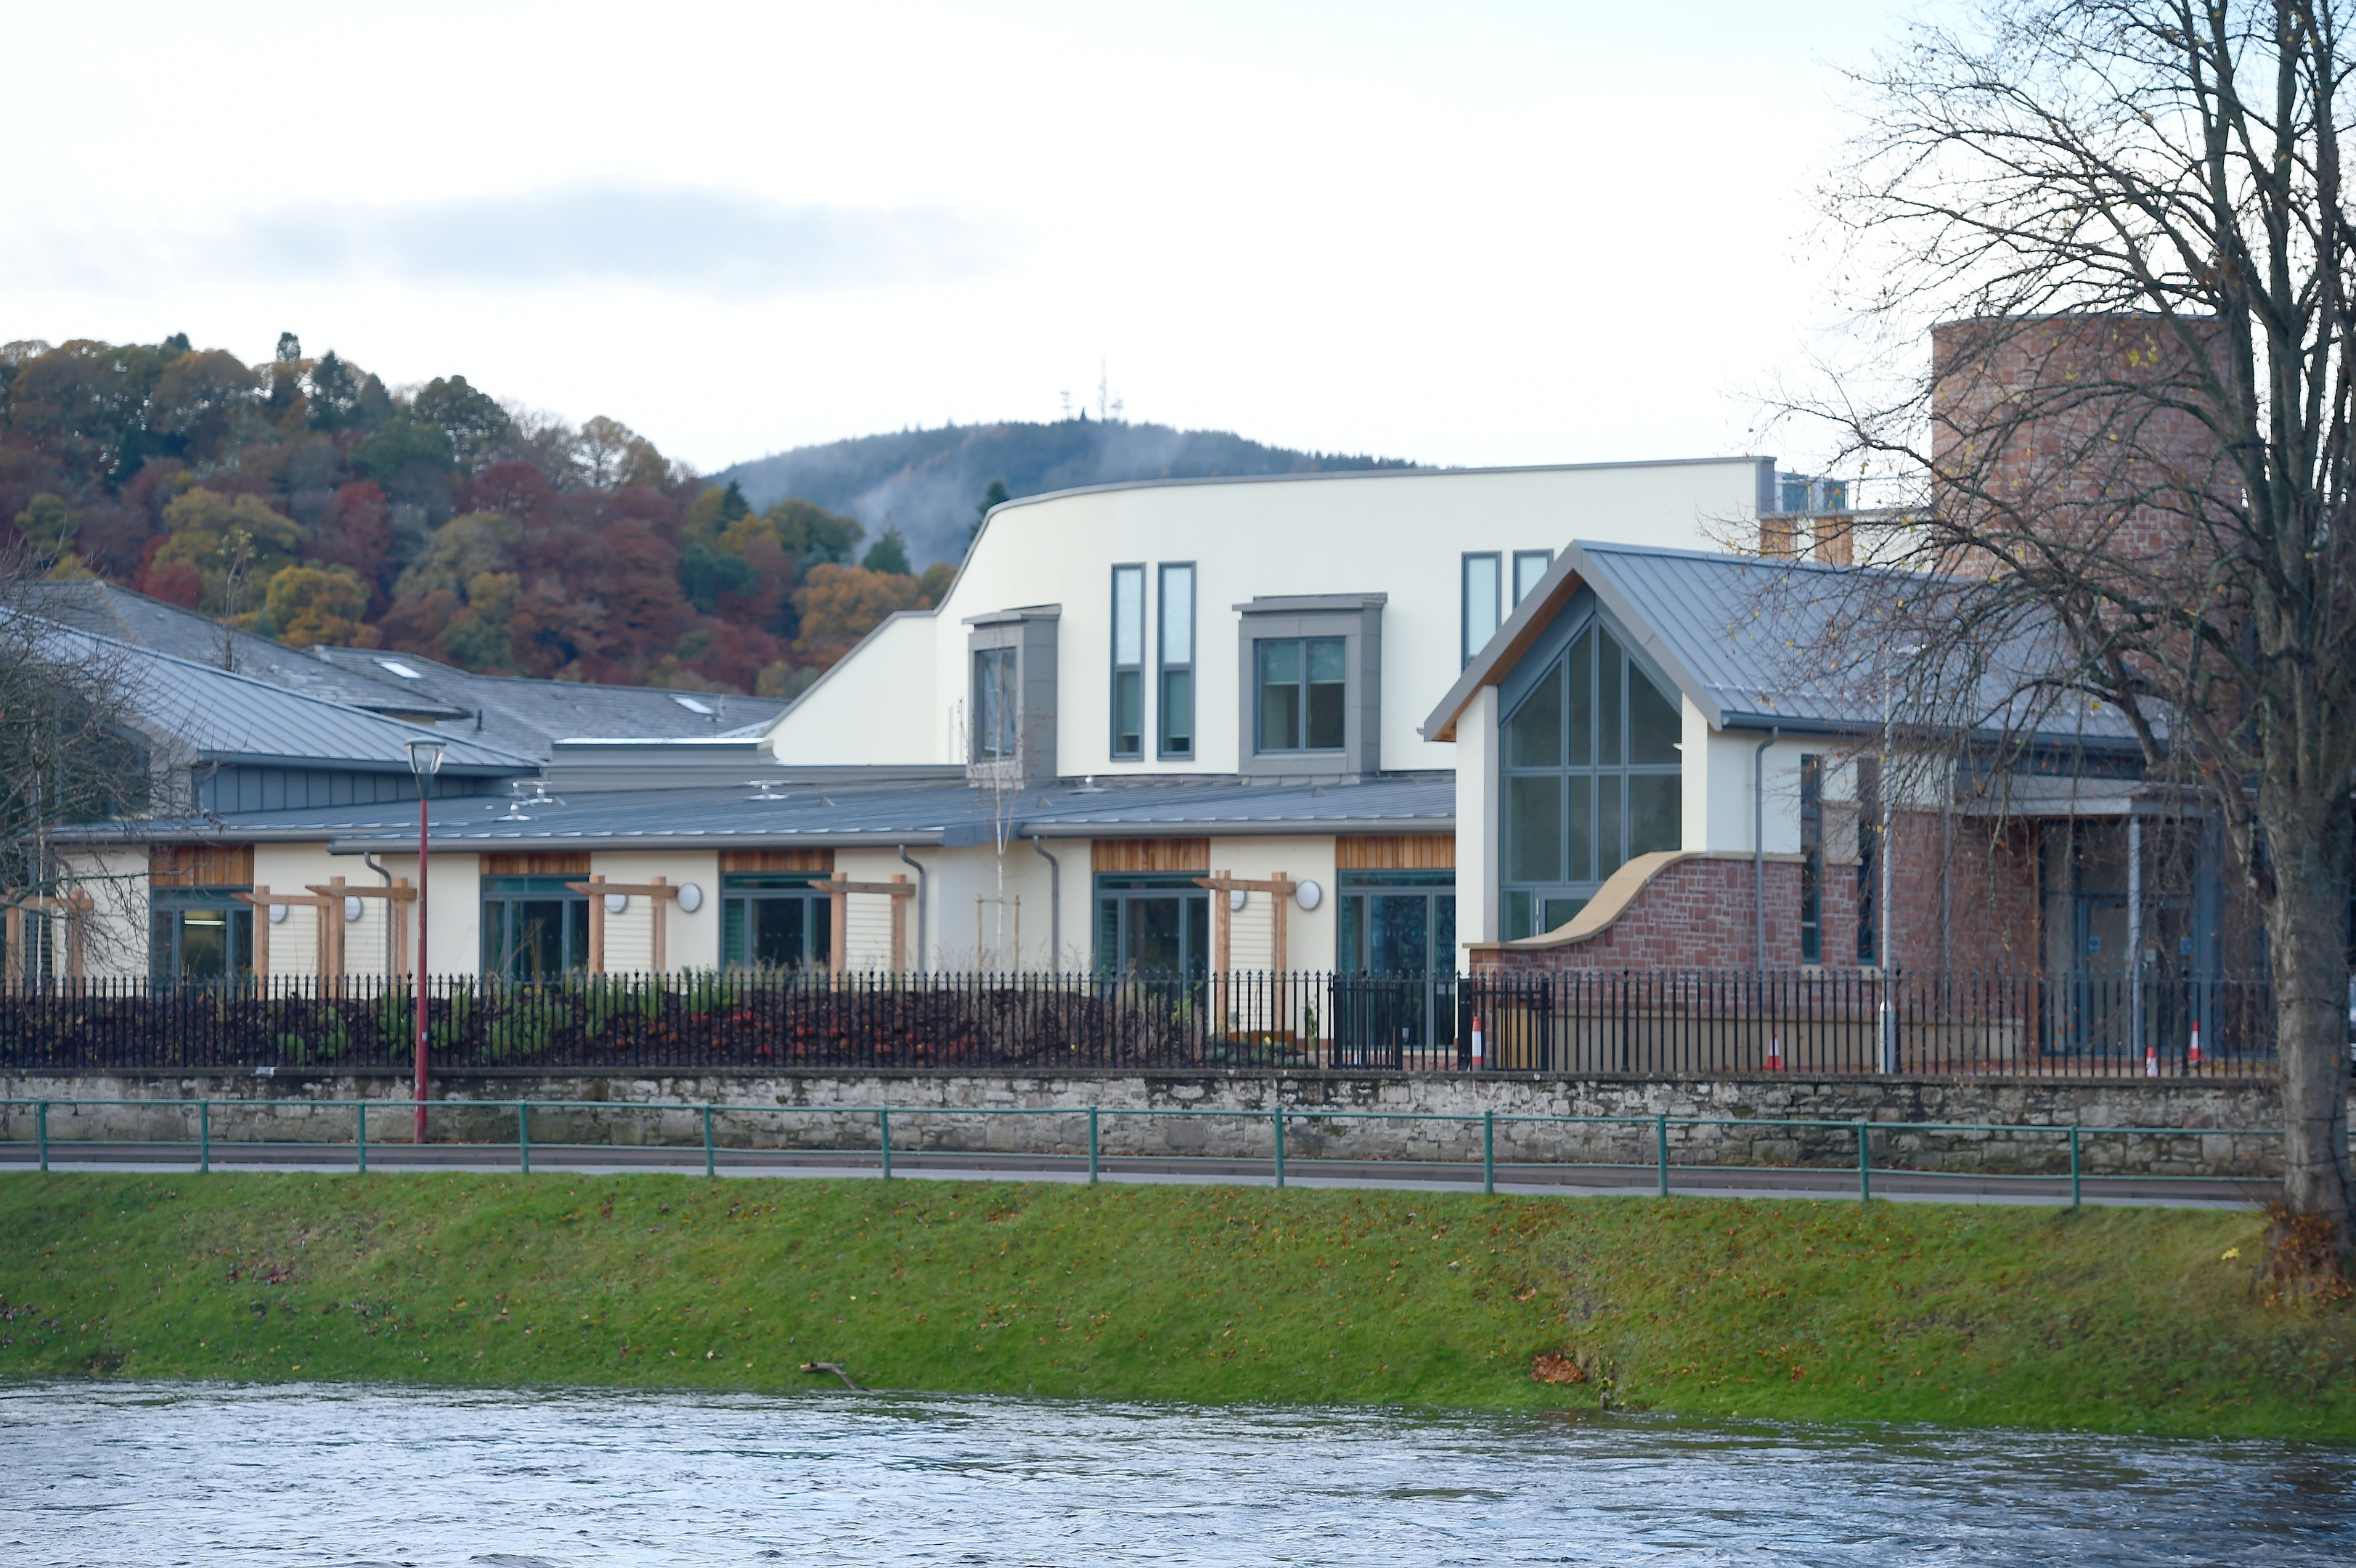 Highland Hospice joins forced with bereaved children servicesThe Highland Hospice in Inverness yesterday (Thursday) received its first patients after a major rebuild and refurbishment.